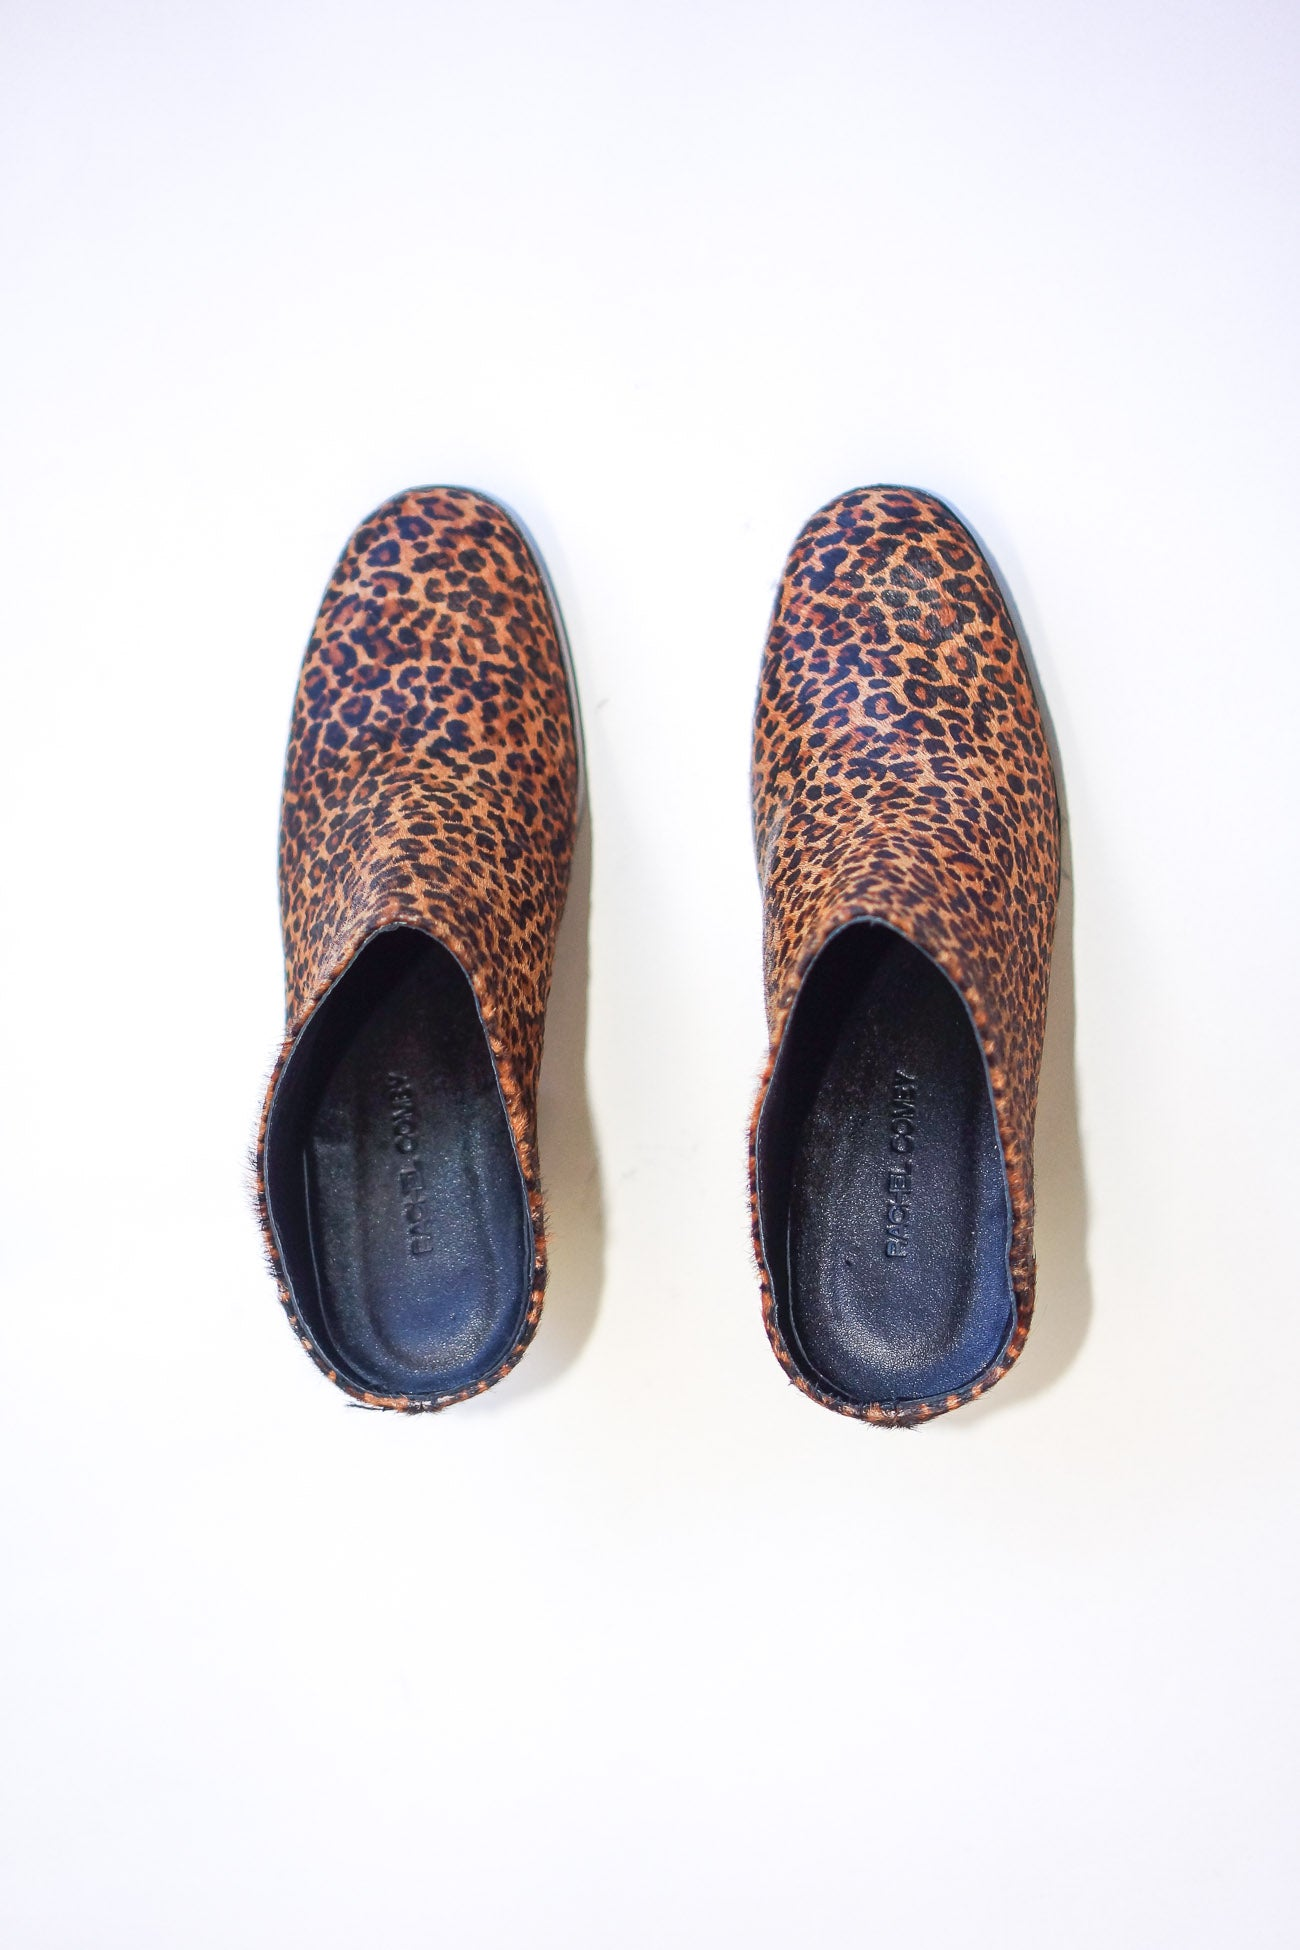 Rachel Comey Mars Mule Shoes in Leopard Print